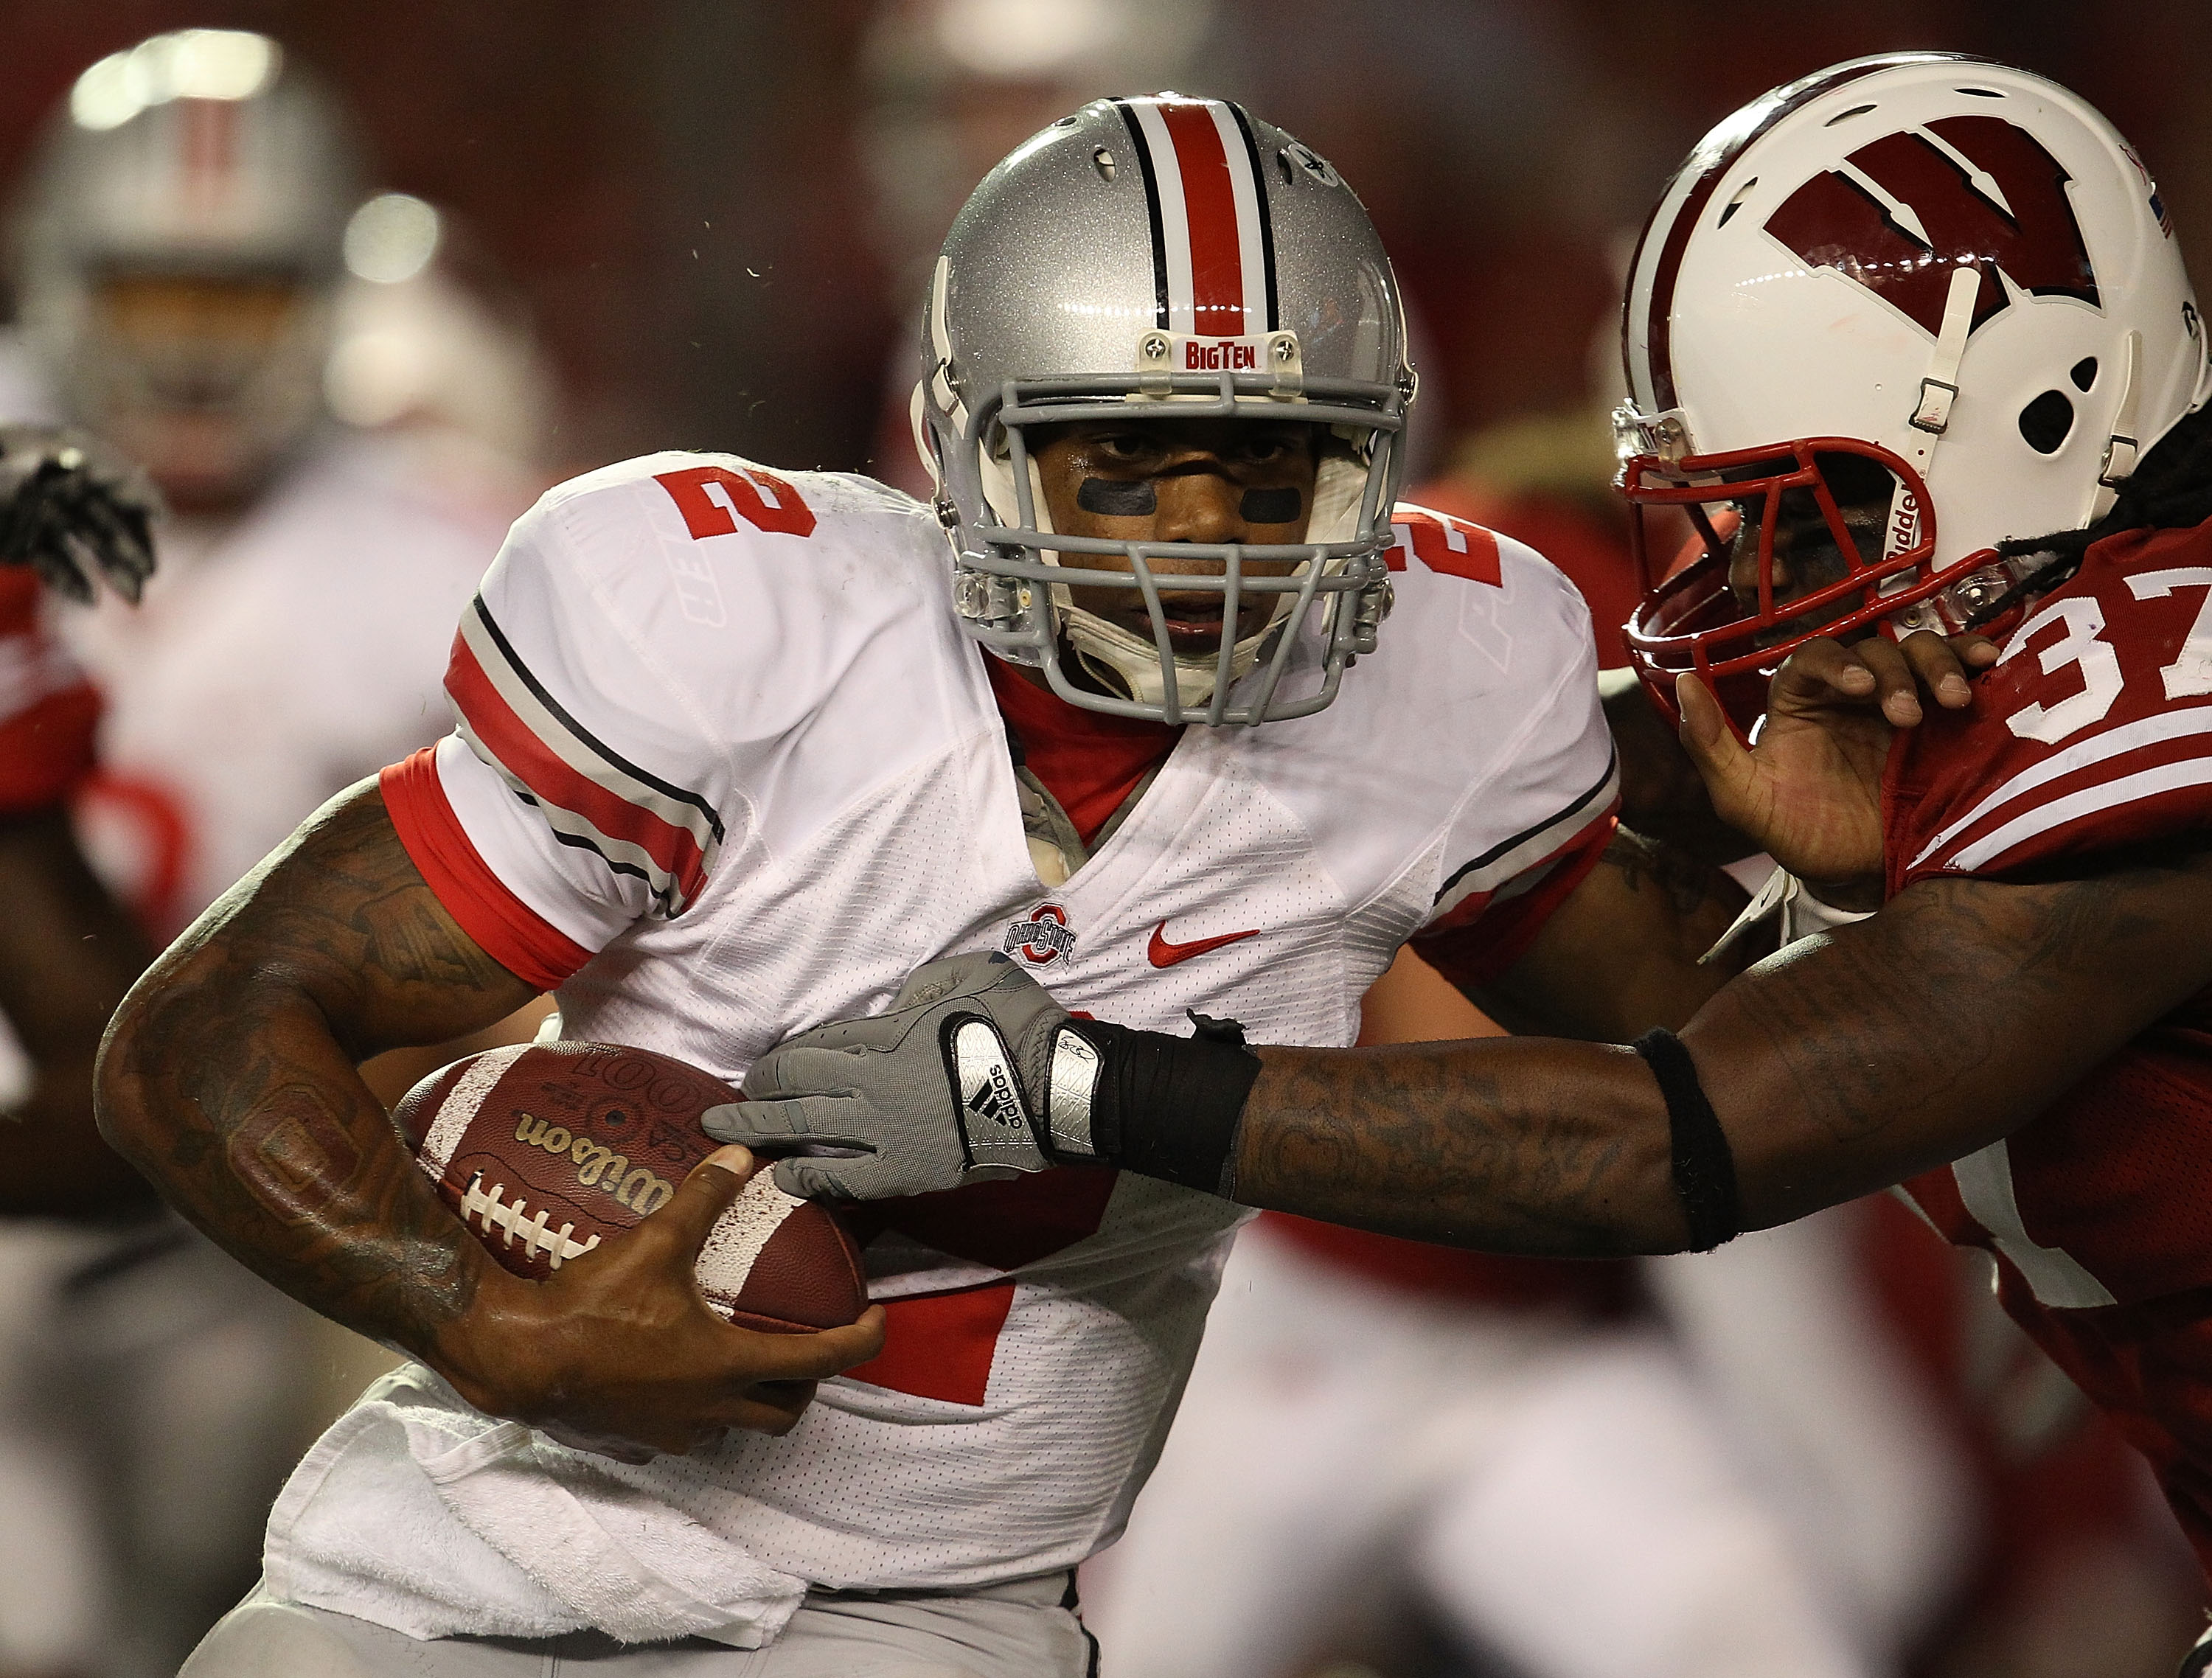 MADISON, WI - OCTOBER 16: Terrelle Pryor #2 of the Ohio State Buckeyes rushes against Kevin Claxton #37 of the Wisconsin Badgers at Camp Randall Stadium on October 16, 2010 in Madison, Wisconsin. Wisconsin defeated Ohio State 31-18.  (Photo by Jonathan Da